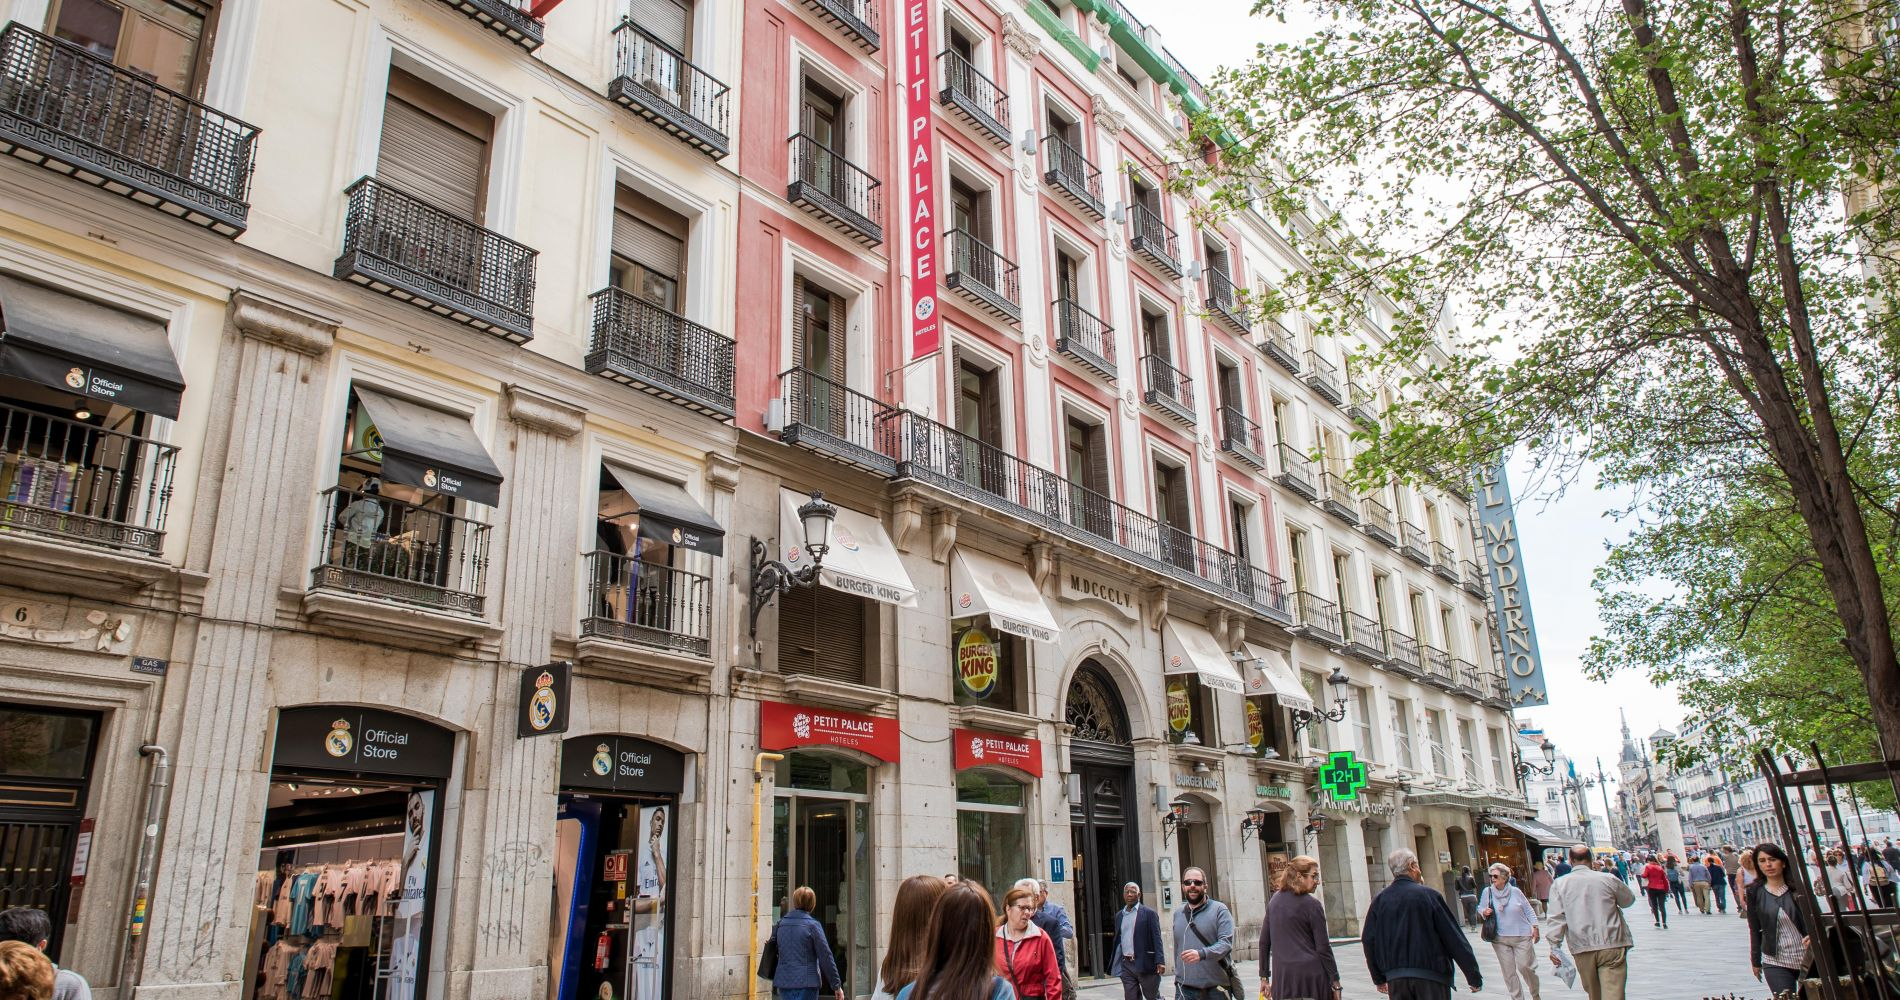 Petit palace puerta del sol best hotels and overnight for Hotel calle arenal madrid